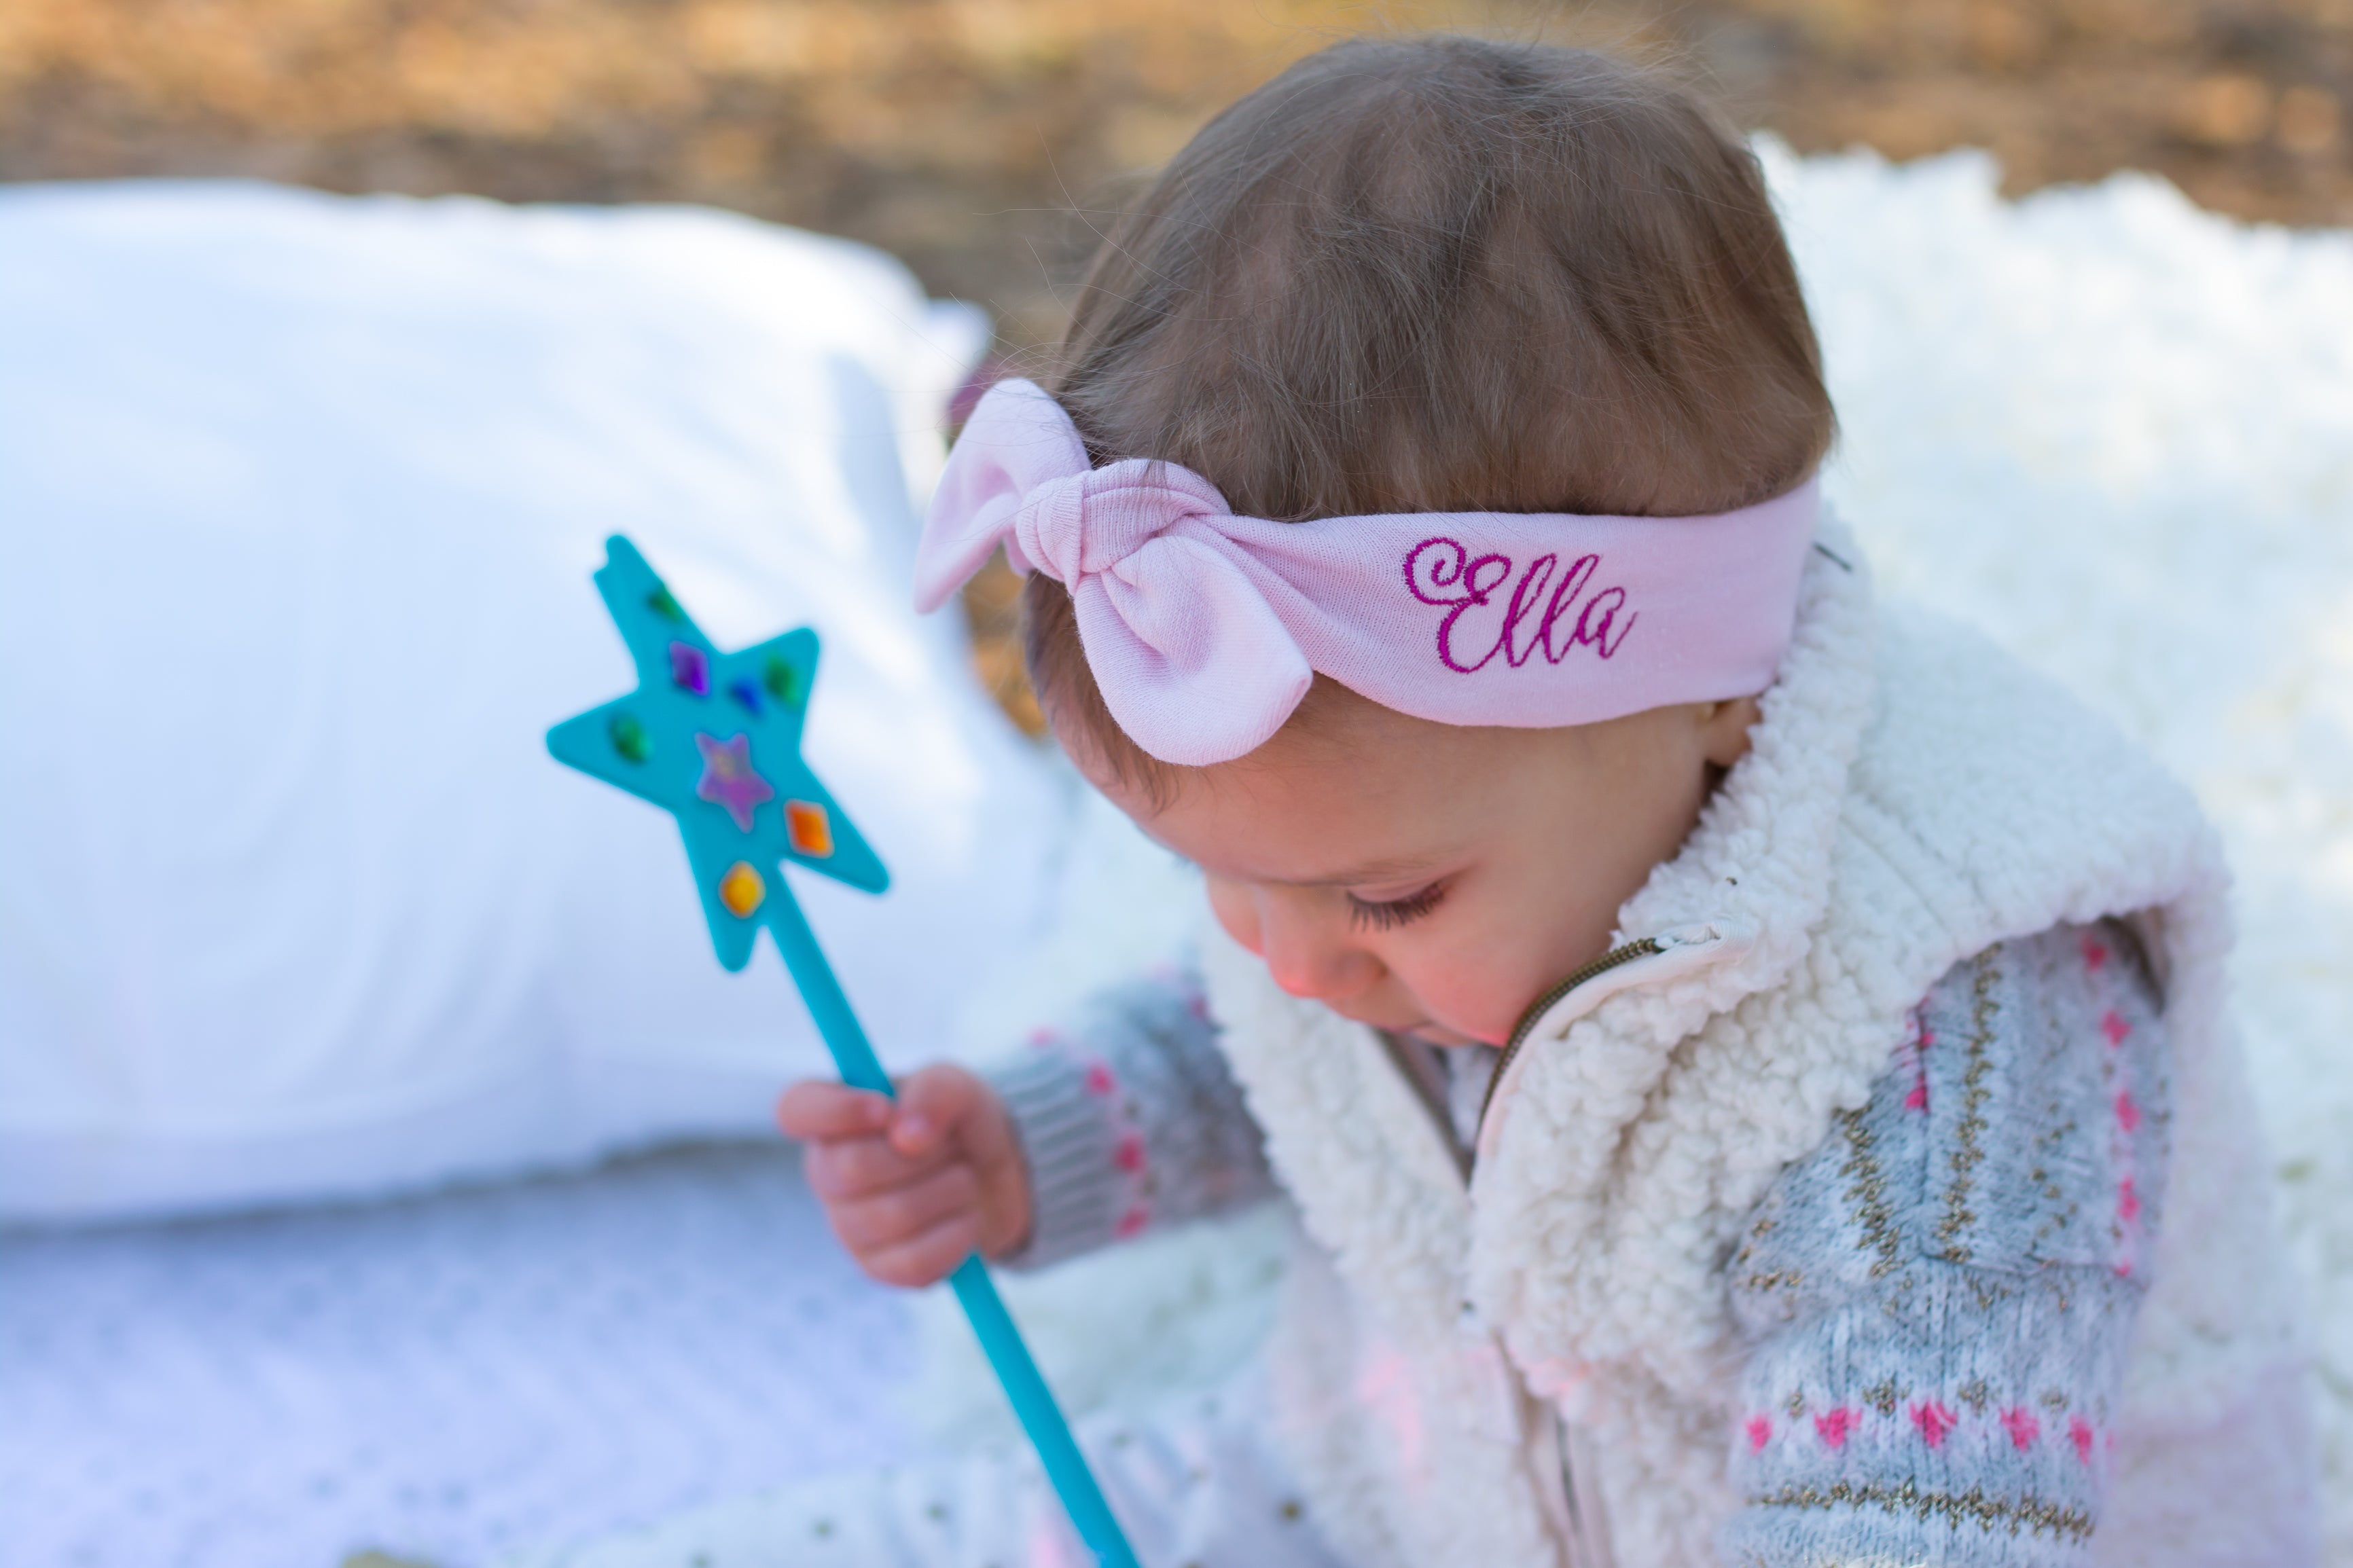 little girl with a star wand wearing a top knot headband with her name one it